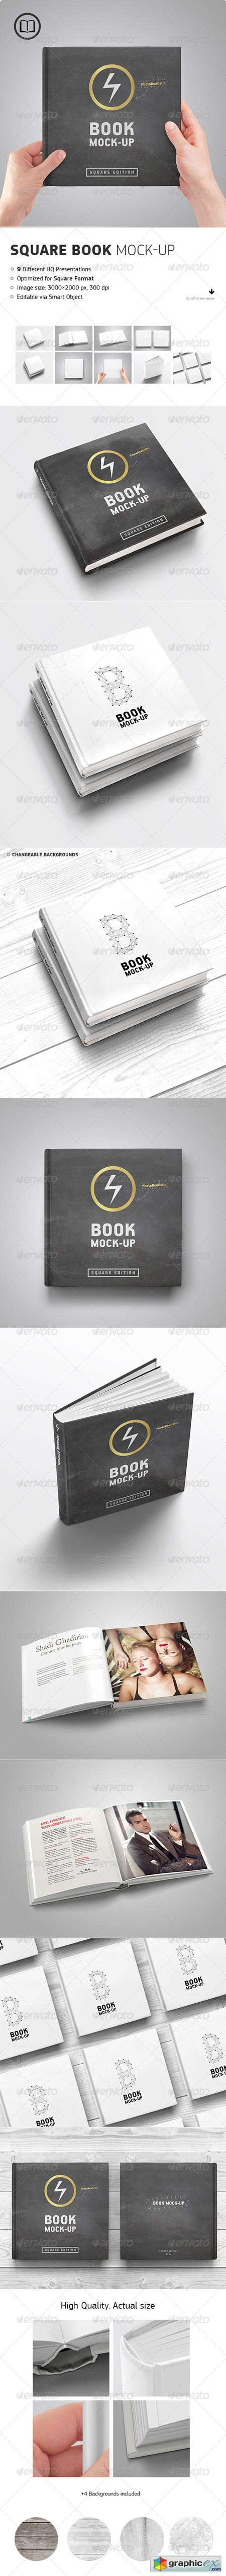 Square Book Mock-Up 8720820